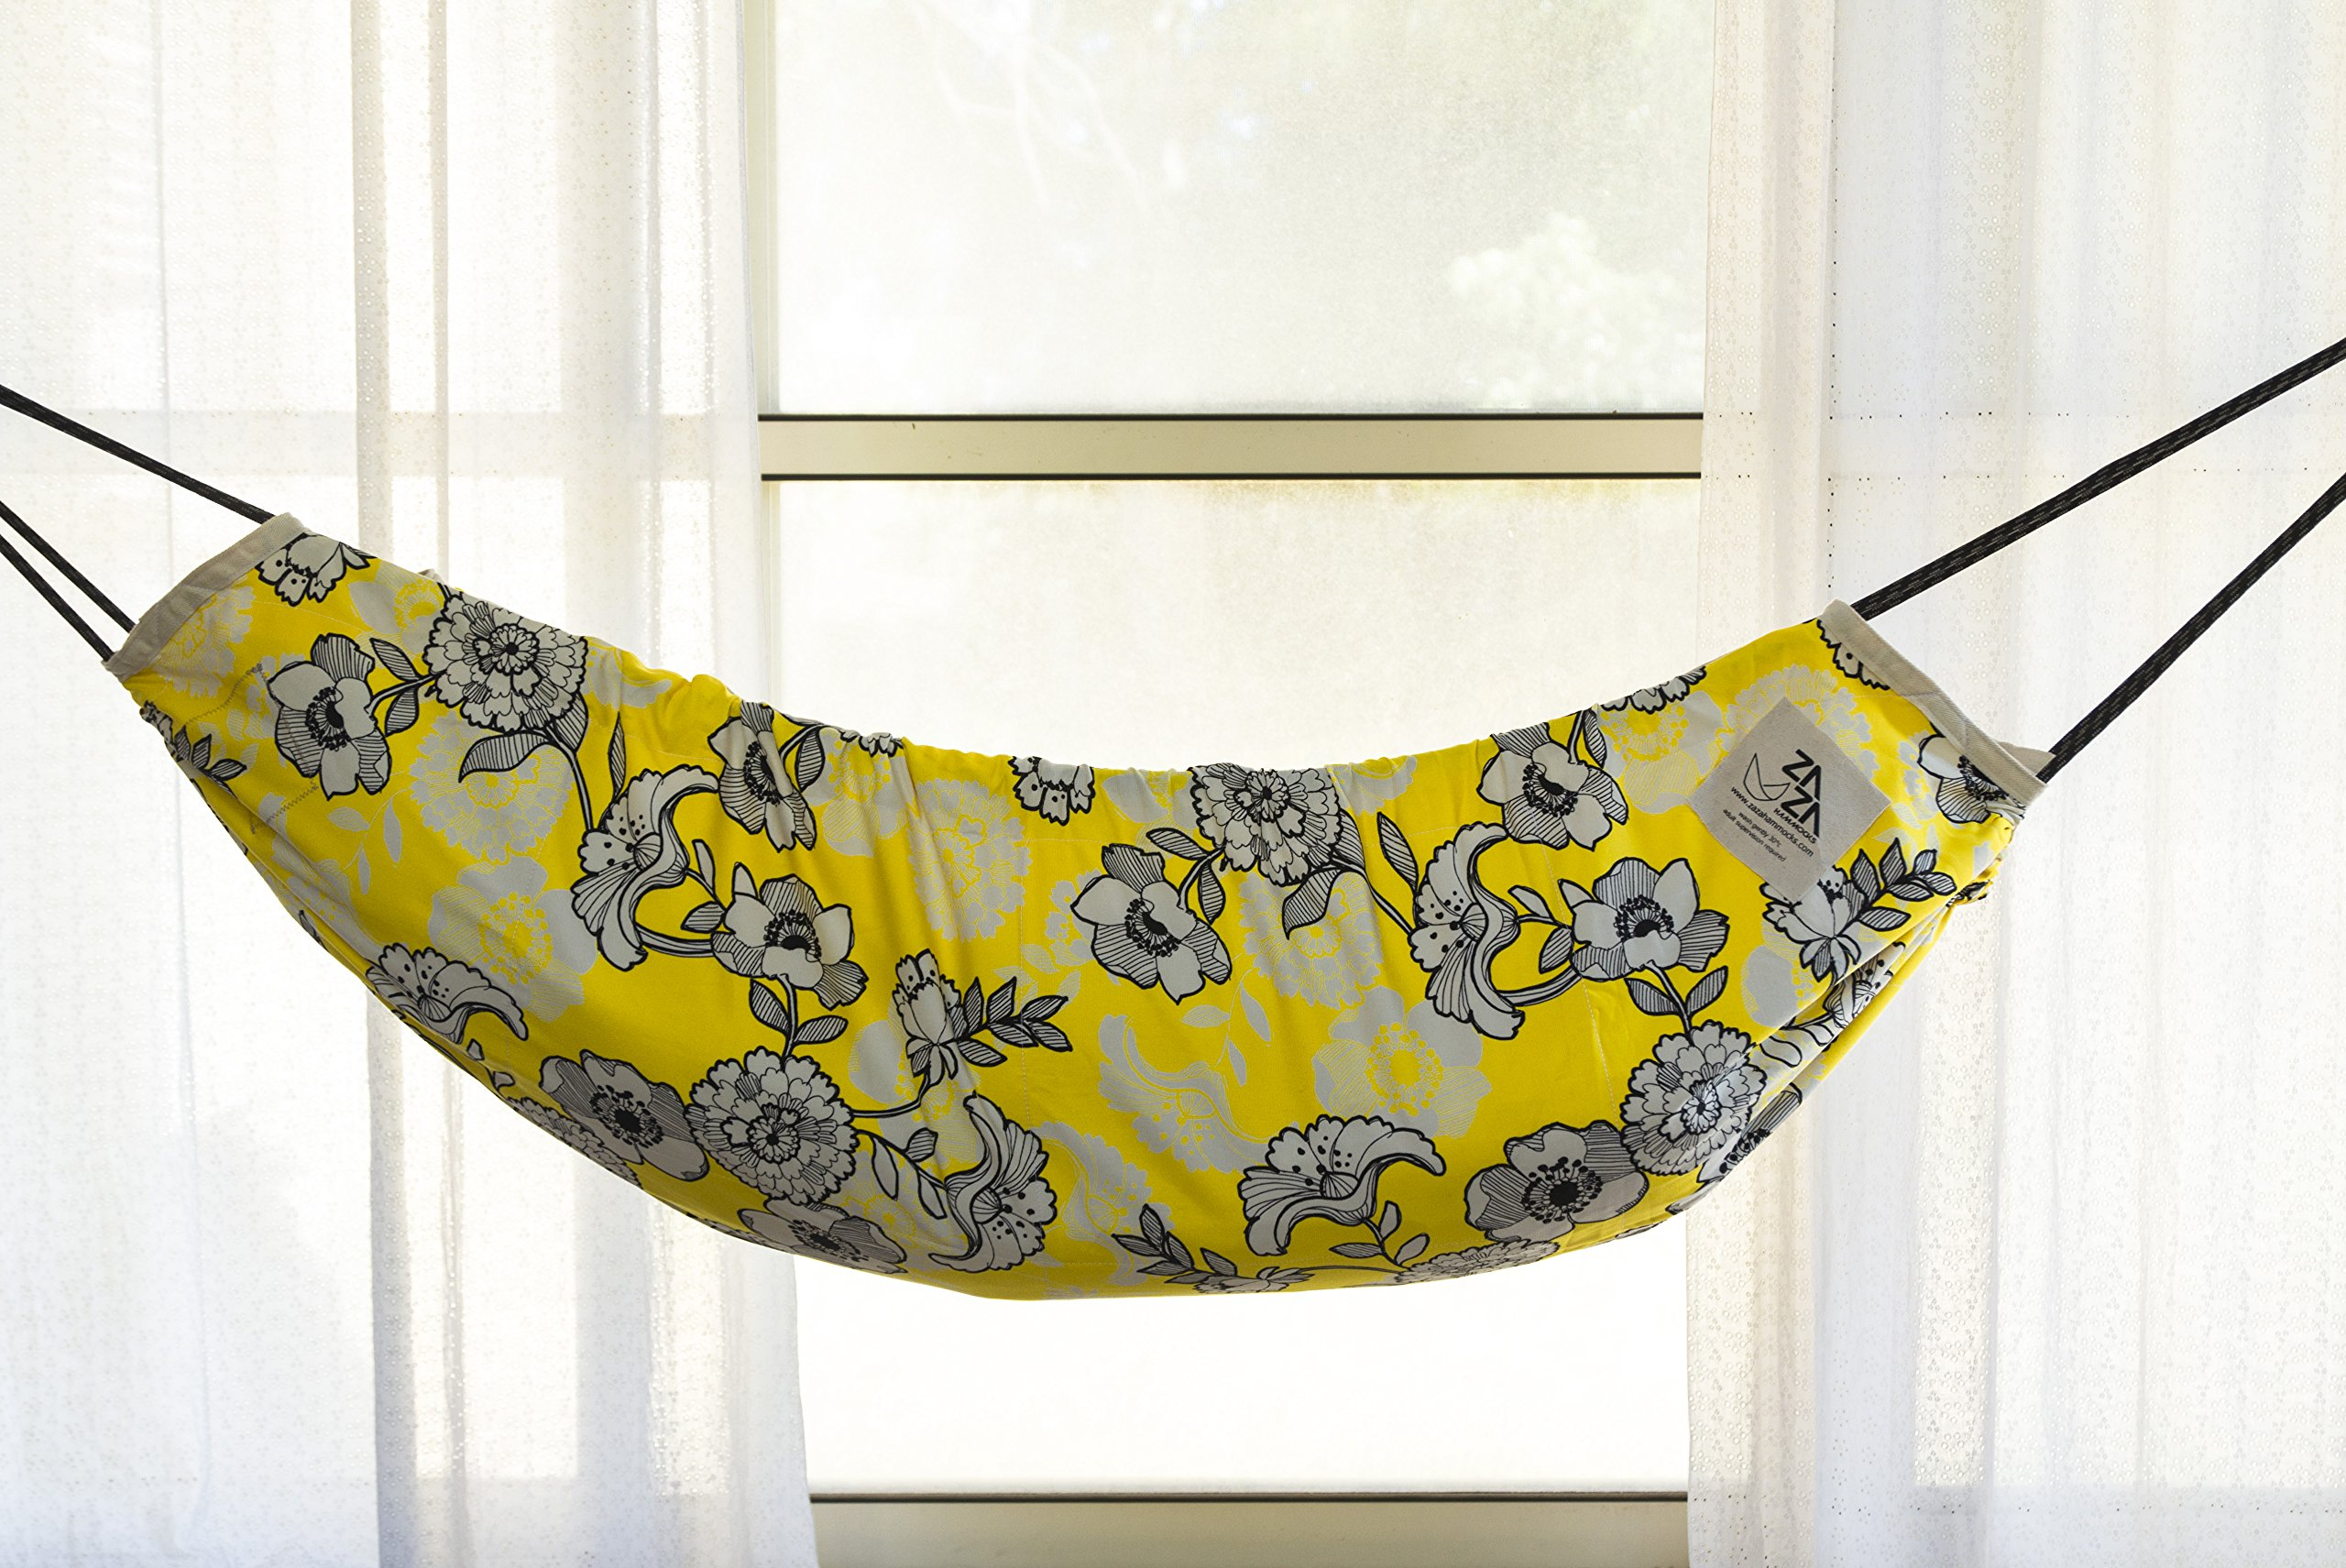 Baby Hammock Swing. Reversible Designer Fabric . Zaza Nature Baby Nest, Swinging Seat Hammock For Babies, Children and Teenagers.